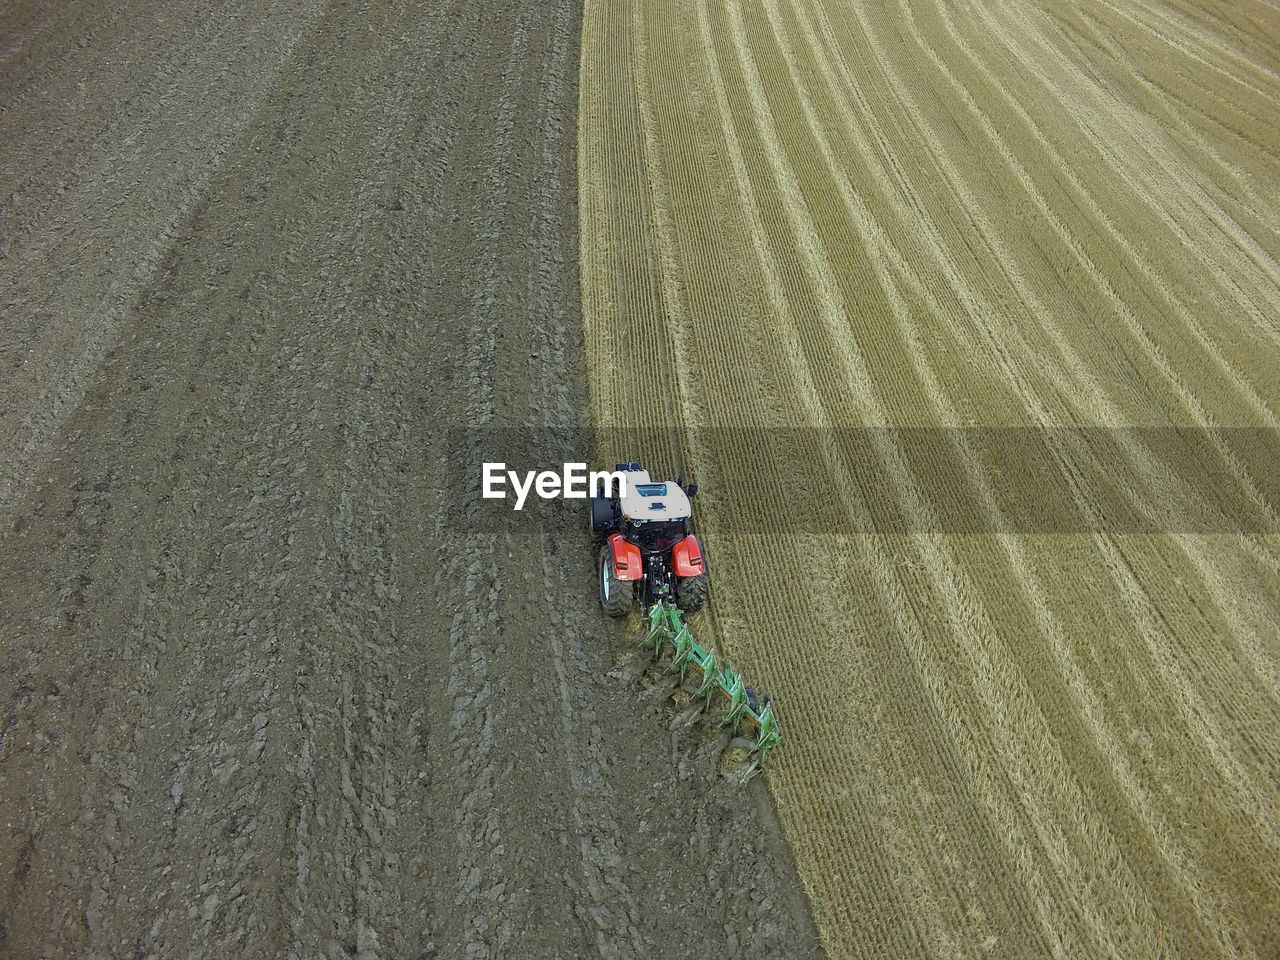 agriculture, farm, high angle view, crop, field, aerial view, rural scene, growth, farmer, one person, occupation, agricultural machinery, cereal plant, nature, working, outdoors, day, transportation, combine harvester, men, adult, one man only, adults only, people, only men